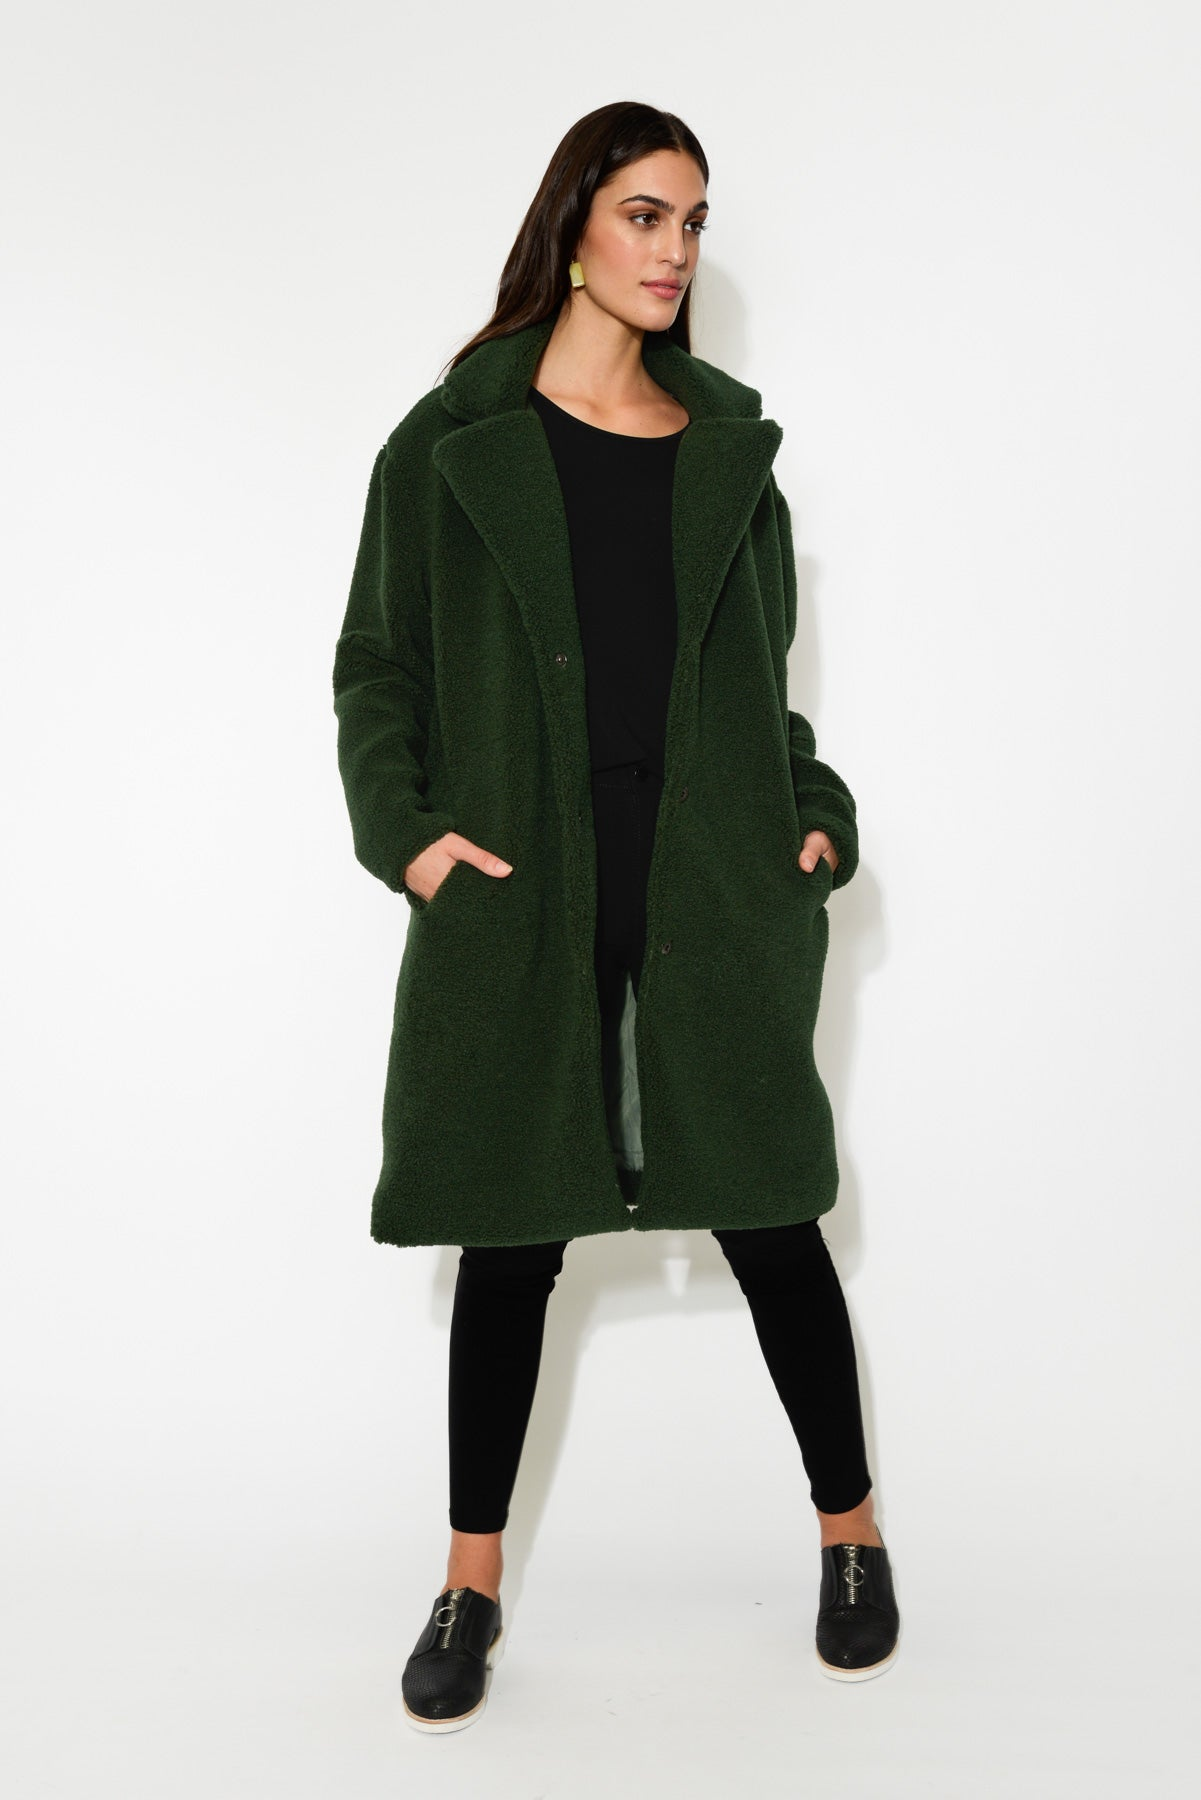 Green Faux Sheep Coat - Blue Bungalow